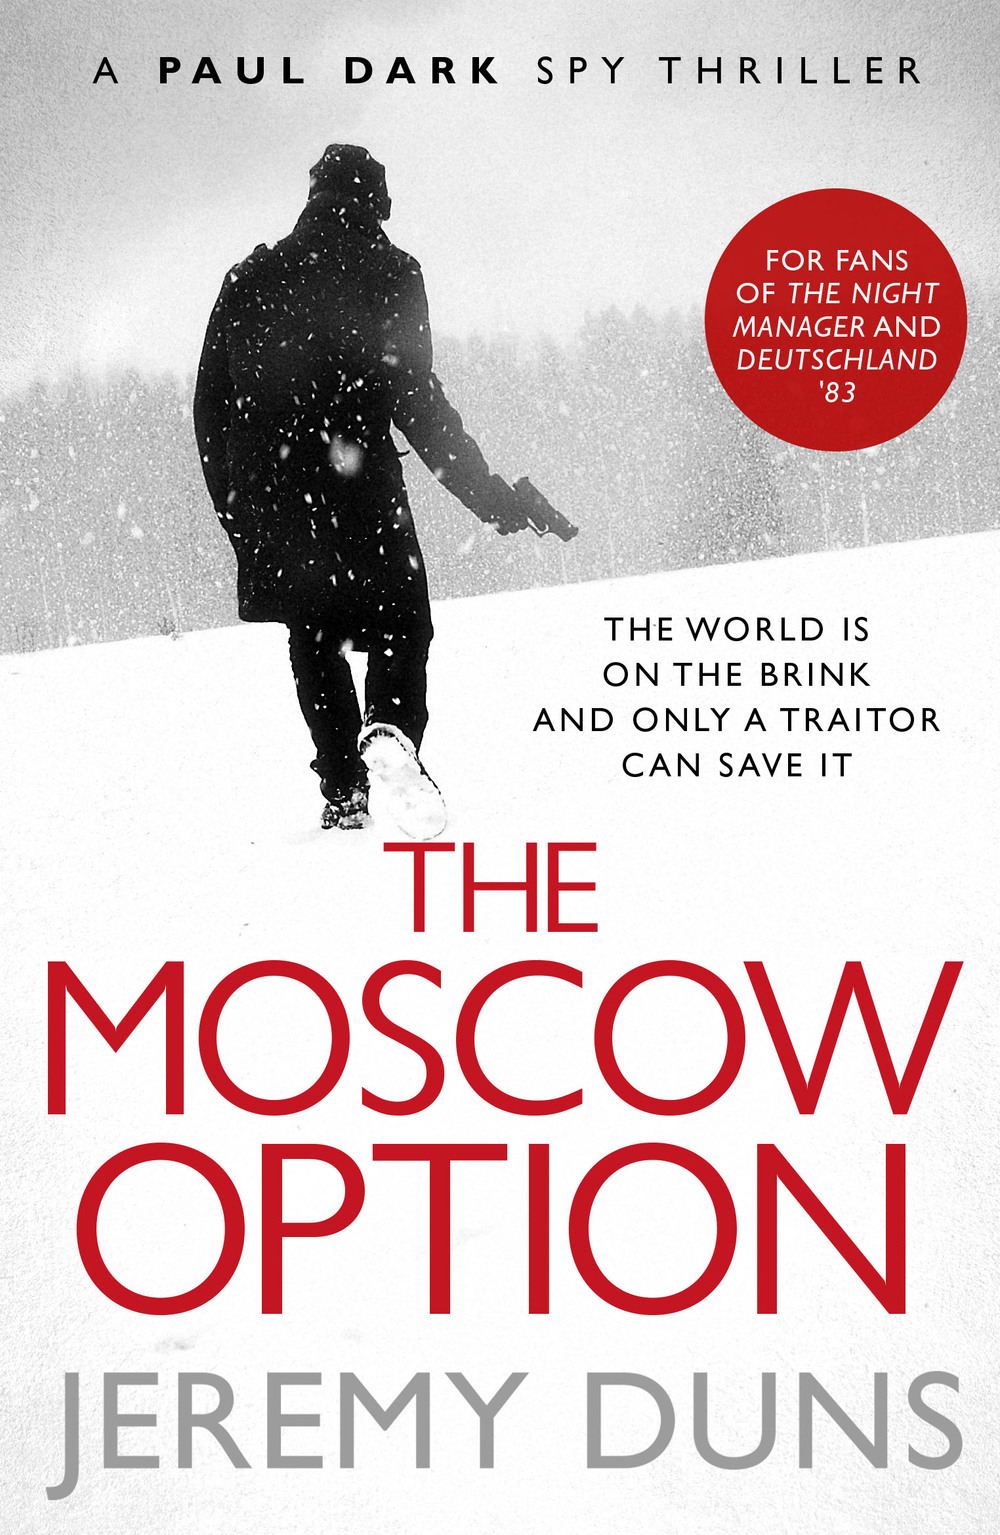 Moscow Option Ebook.jpg